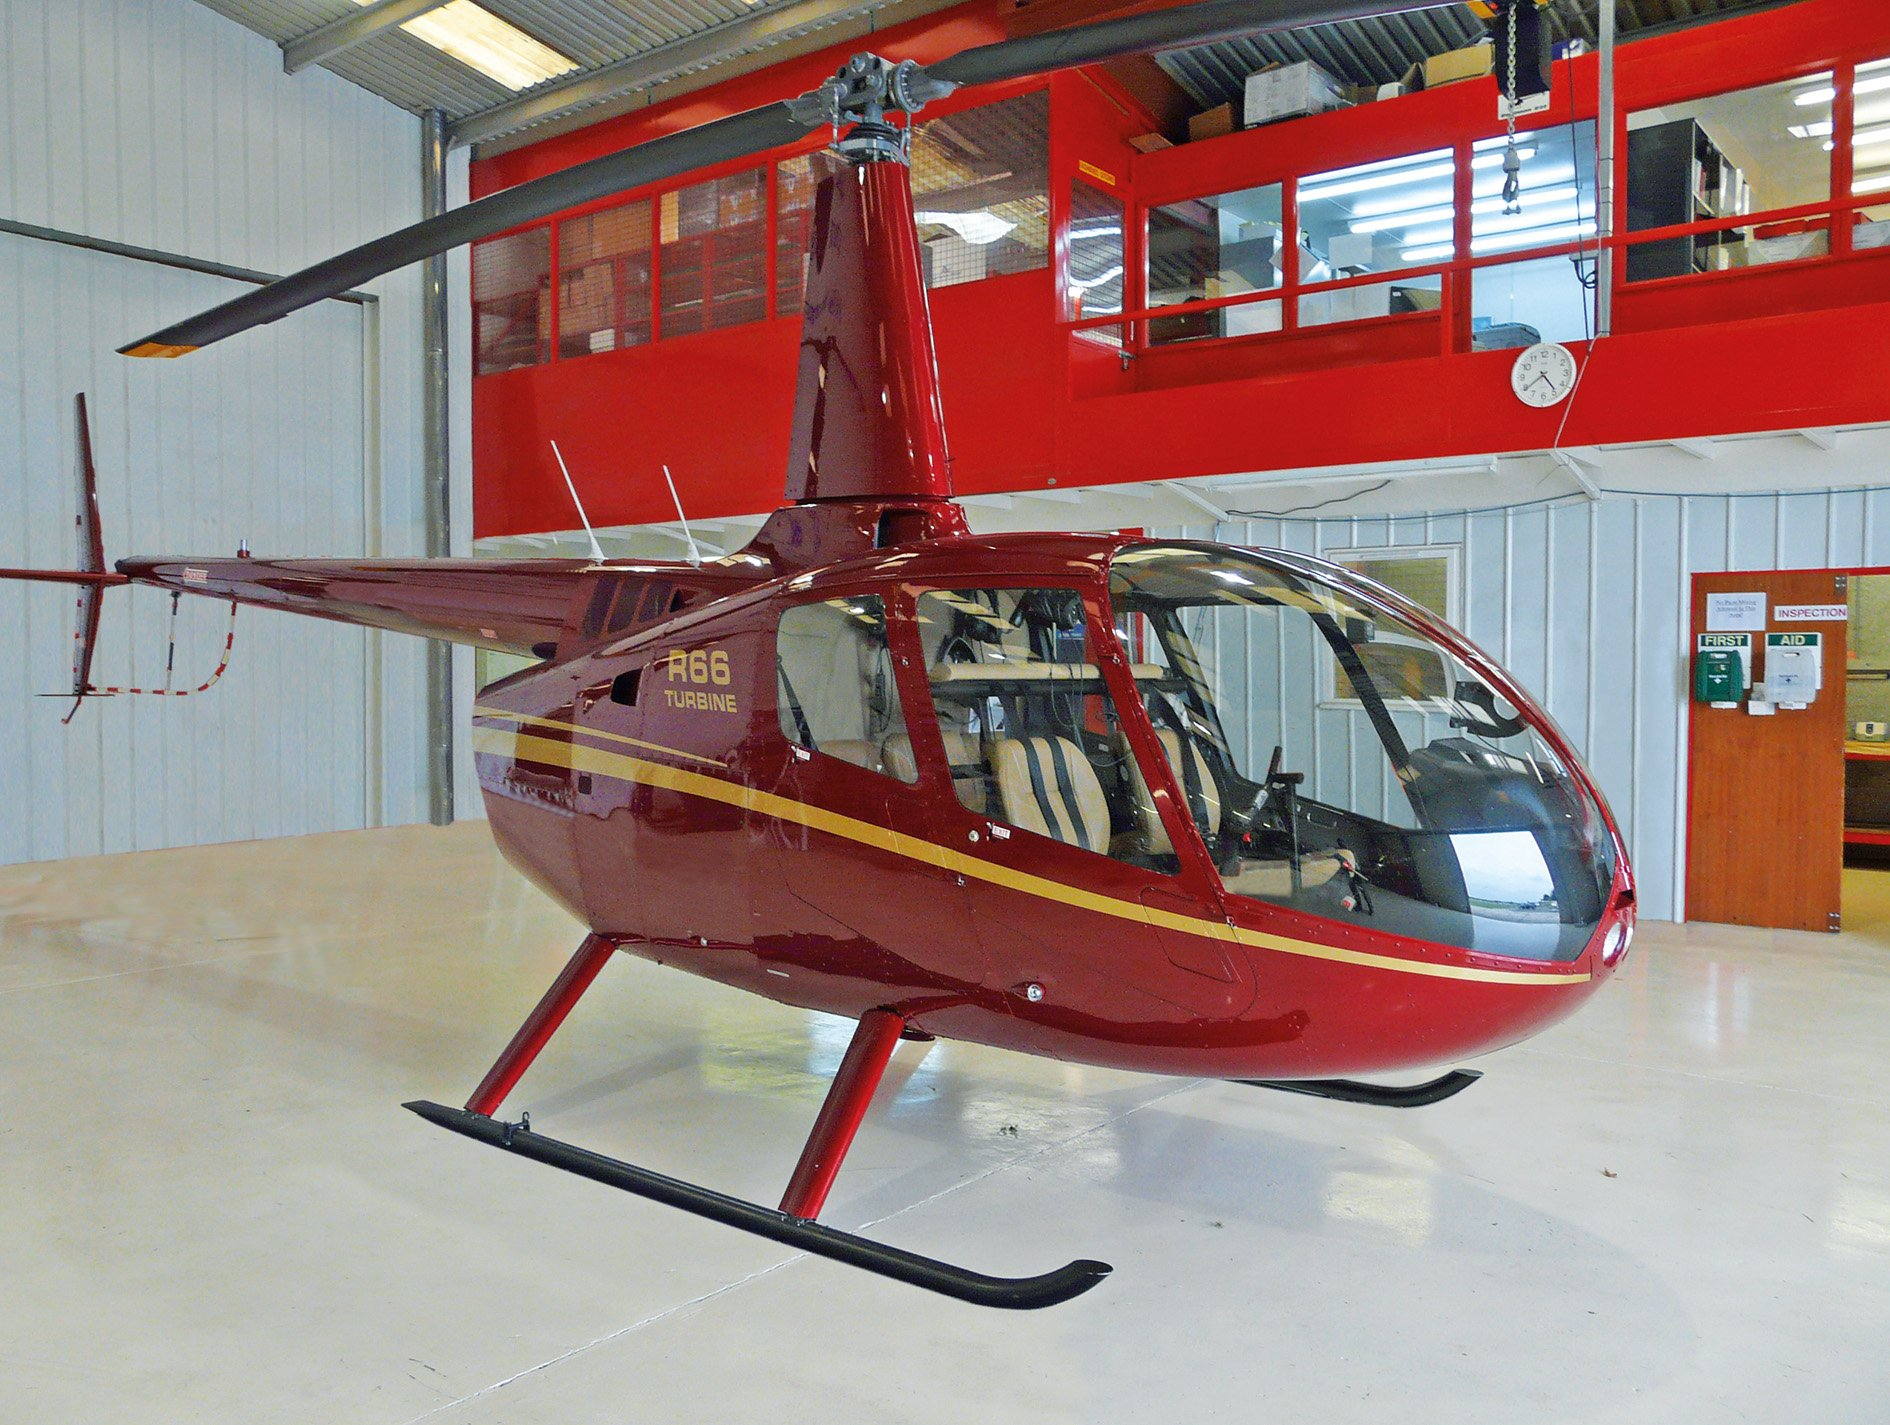 schweizer helicopter for sale with Used Robinson R66 Turbine 2011 Sale on IFAV additionally Acdata 269 en in addition Cabri mga moreover The Future Of Tanks Is Infrared Stealth furthermore Used Robinson R66 Turbine 2014.